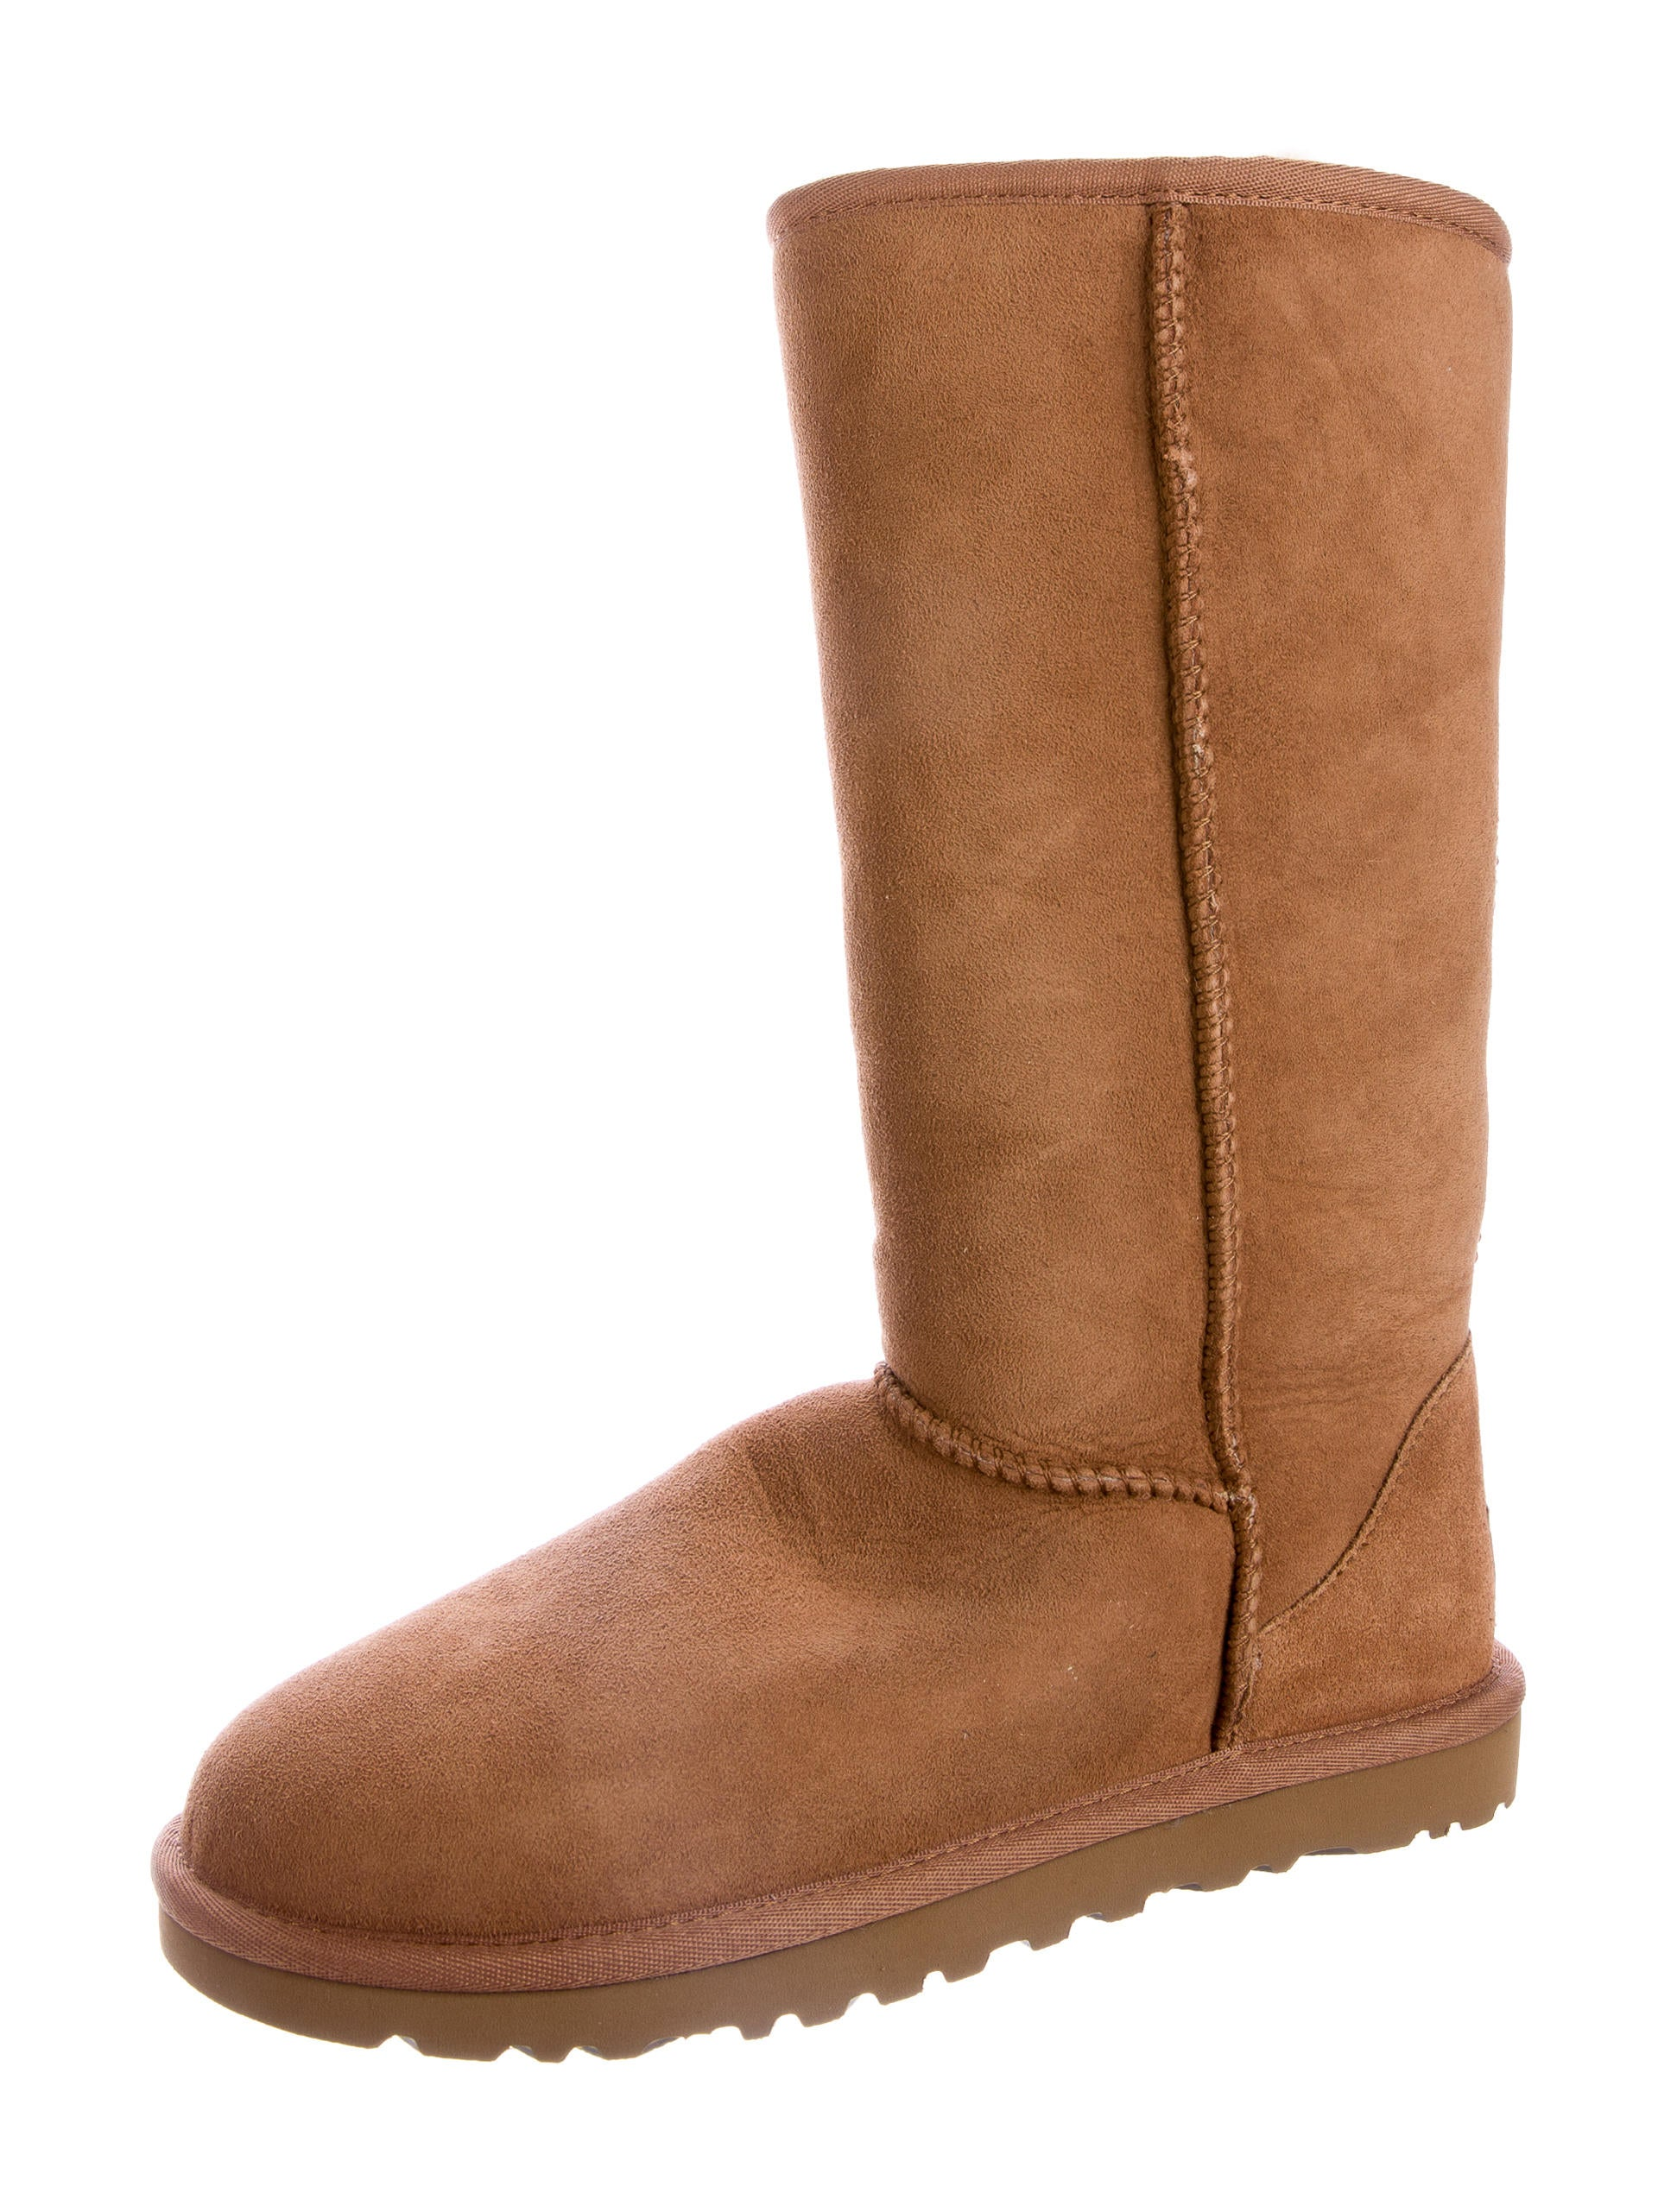 ugg australia classic tall shearling boots w tags shoes. Black Bedroom Furniture Sets. Home Design Ideas